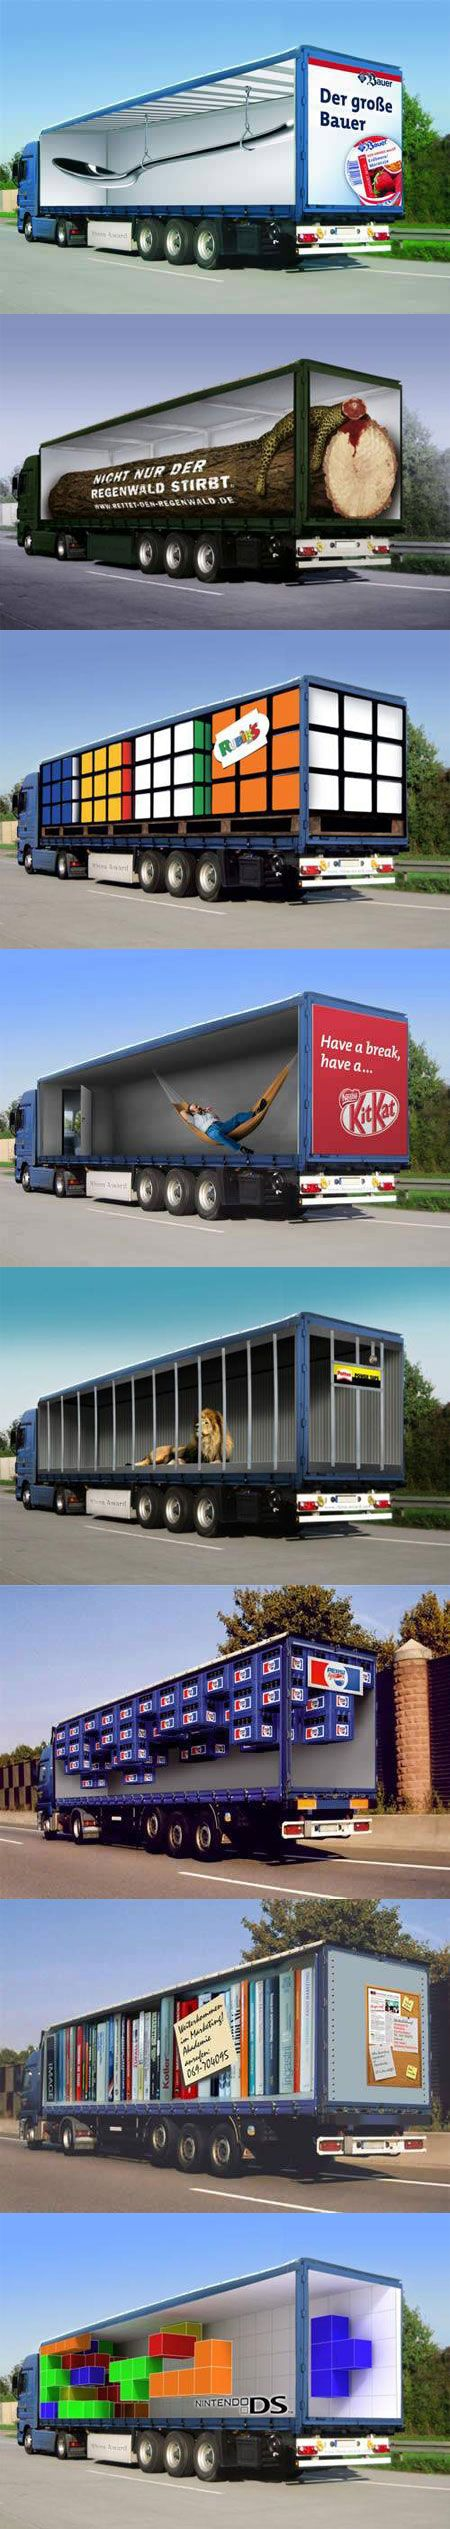 Bus Advertising that go the distance! Creative Truck Advertisements